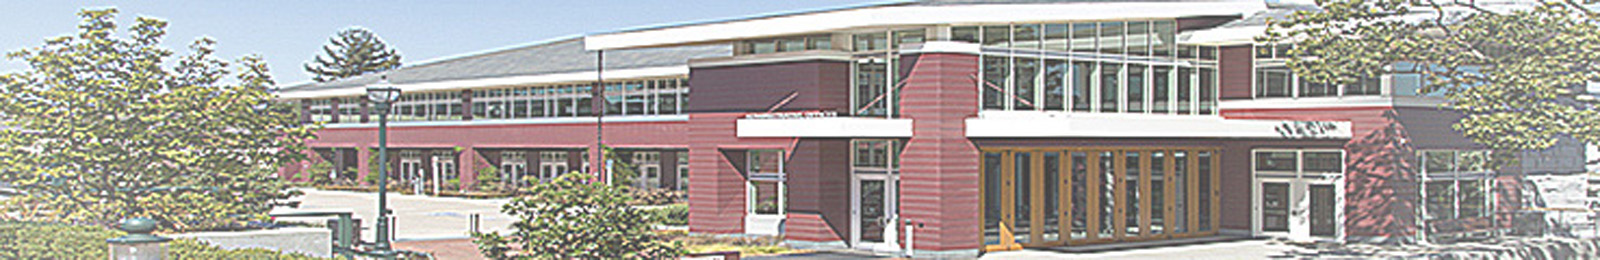 Image of administrative offices